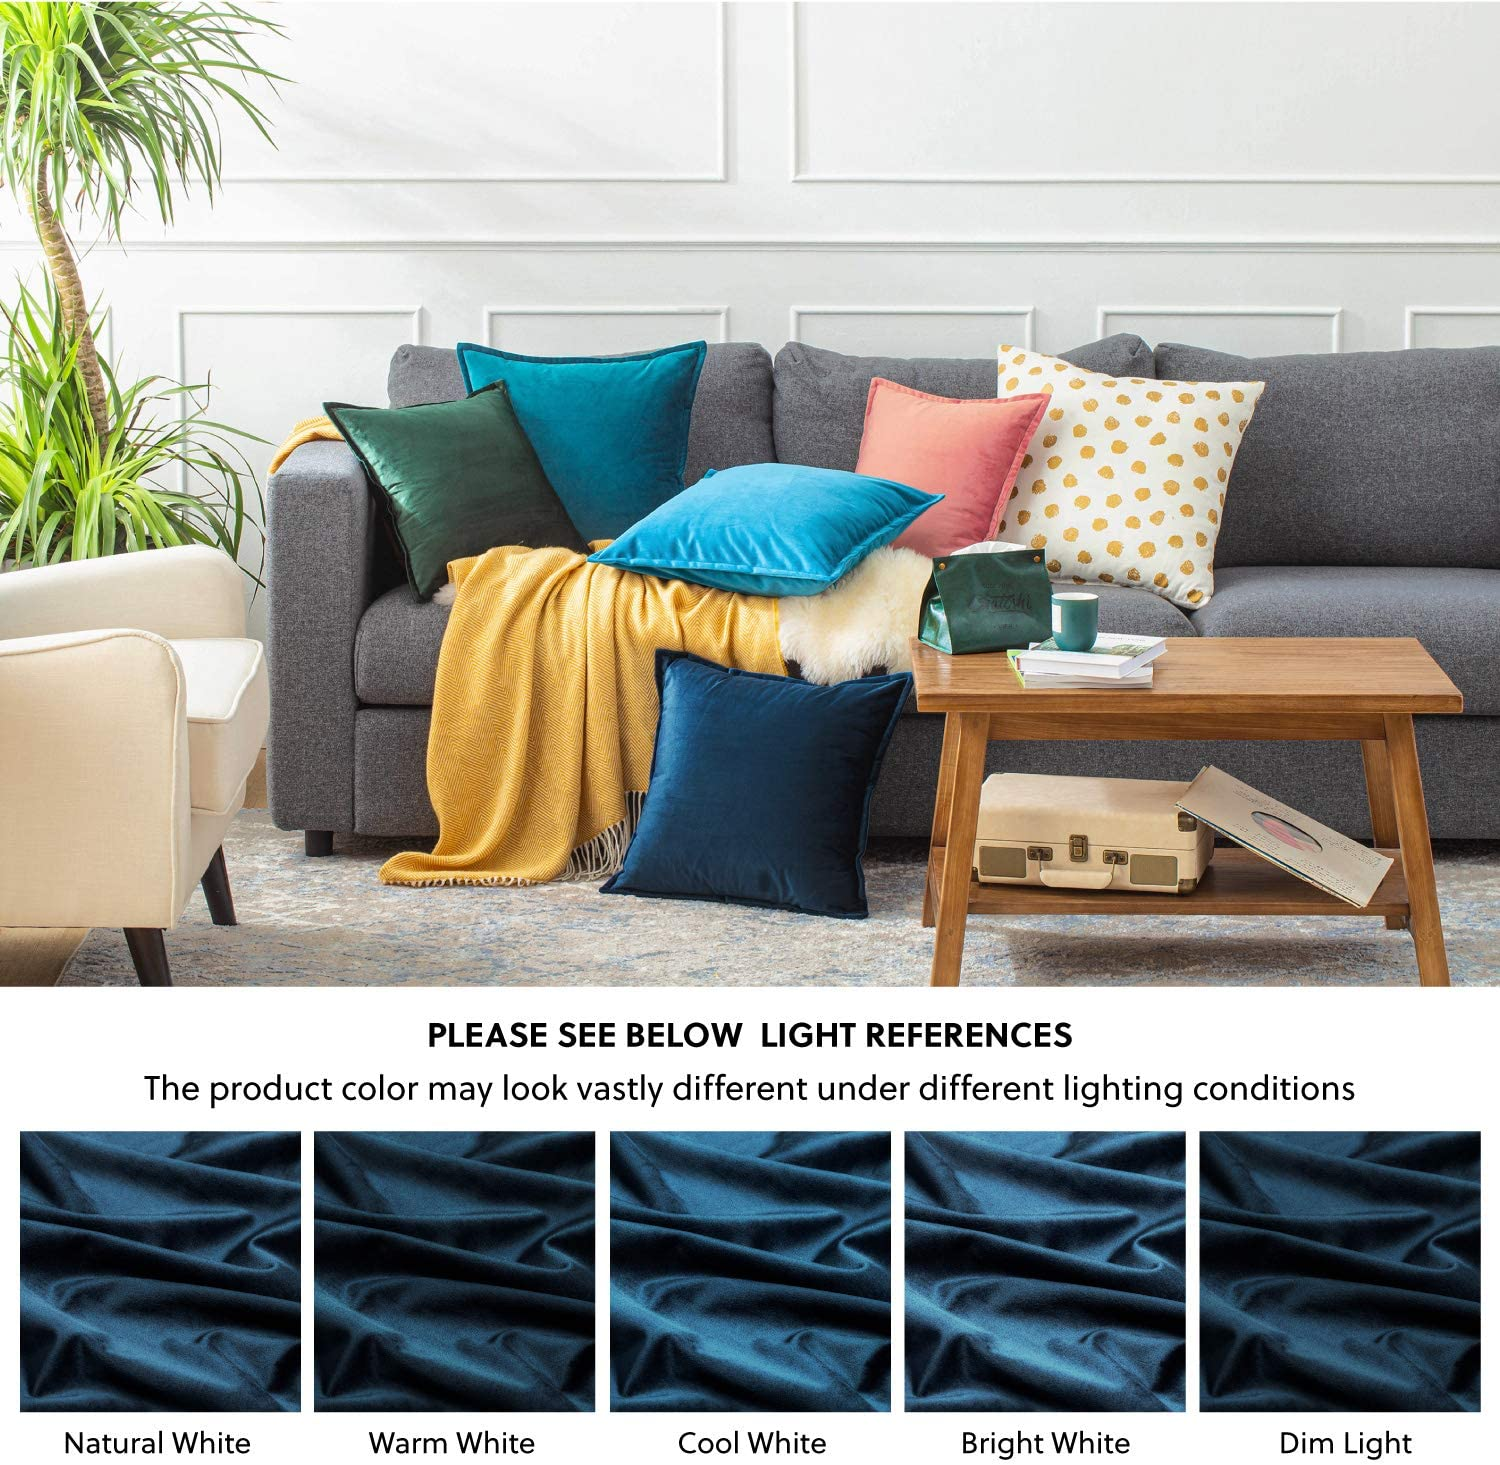 40cm x 40cm Bedsure Velvet Cushion Cover 2 Pack Sky Blue Decorative Pillowcases for Sofa and Couch 16in x 16in